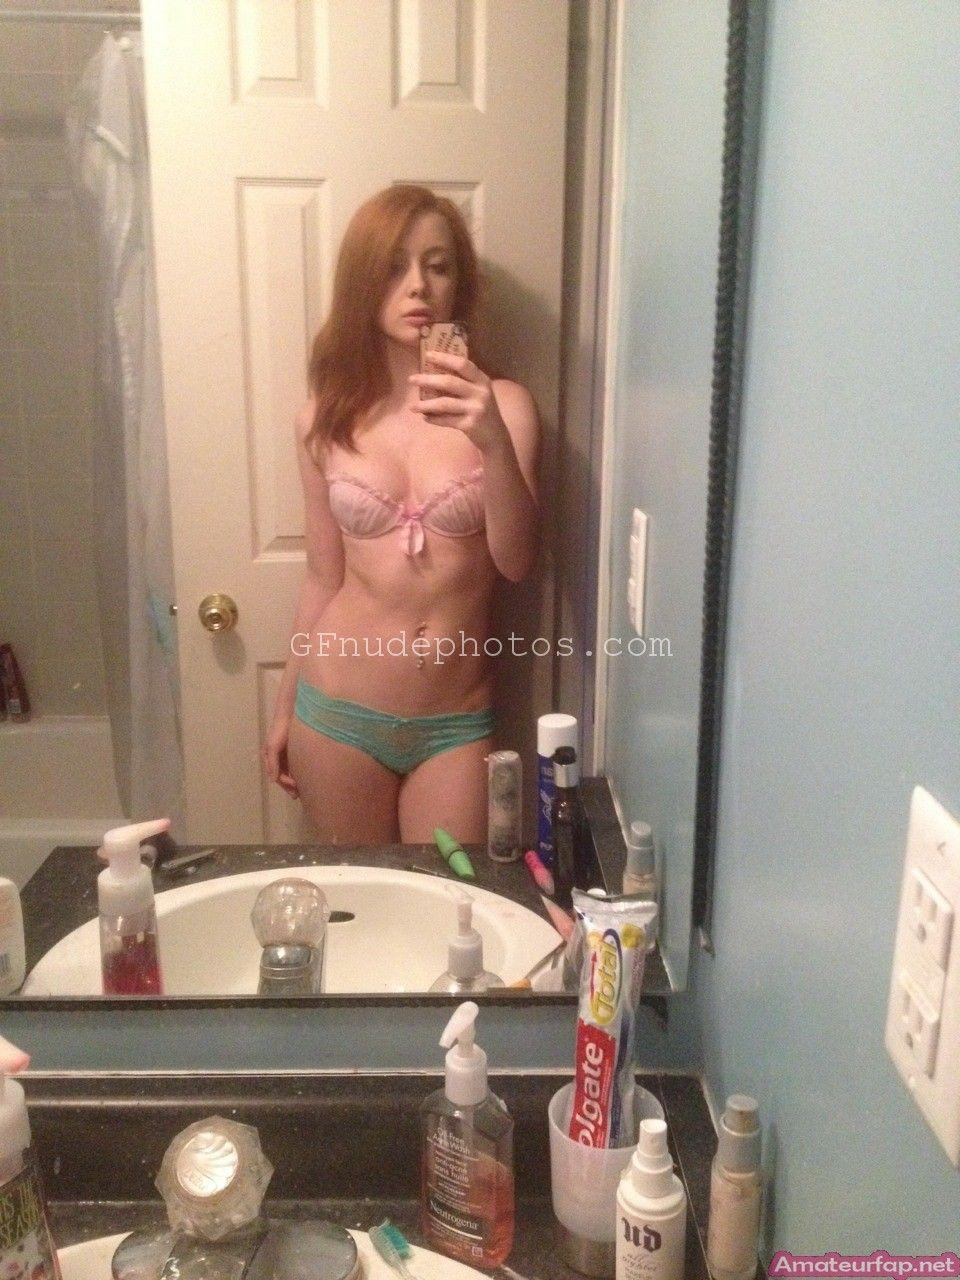 Partially nude red heads remarkable